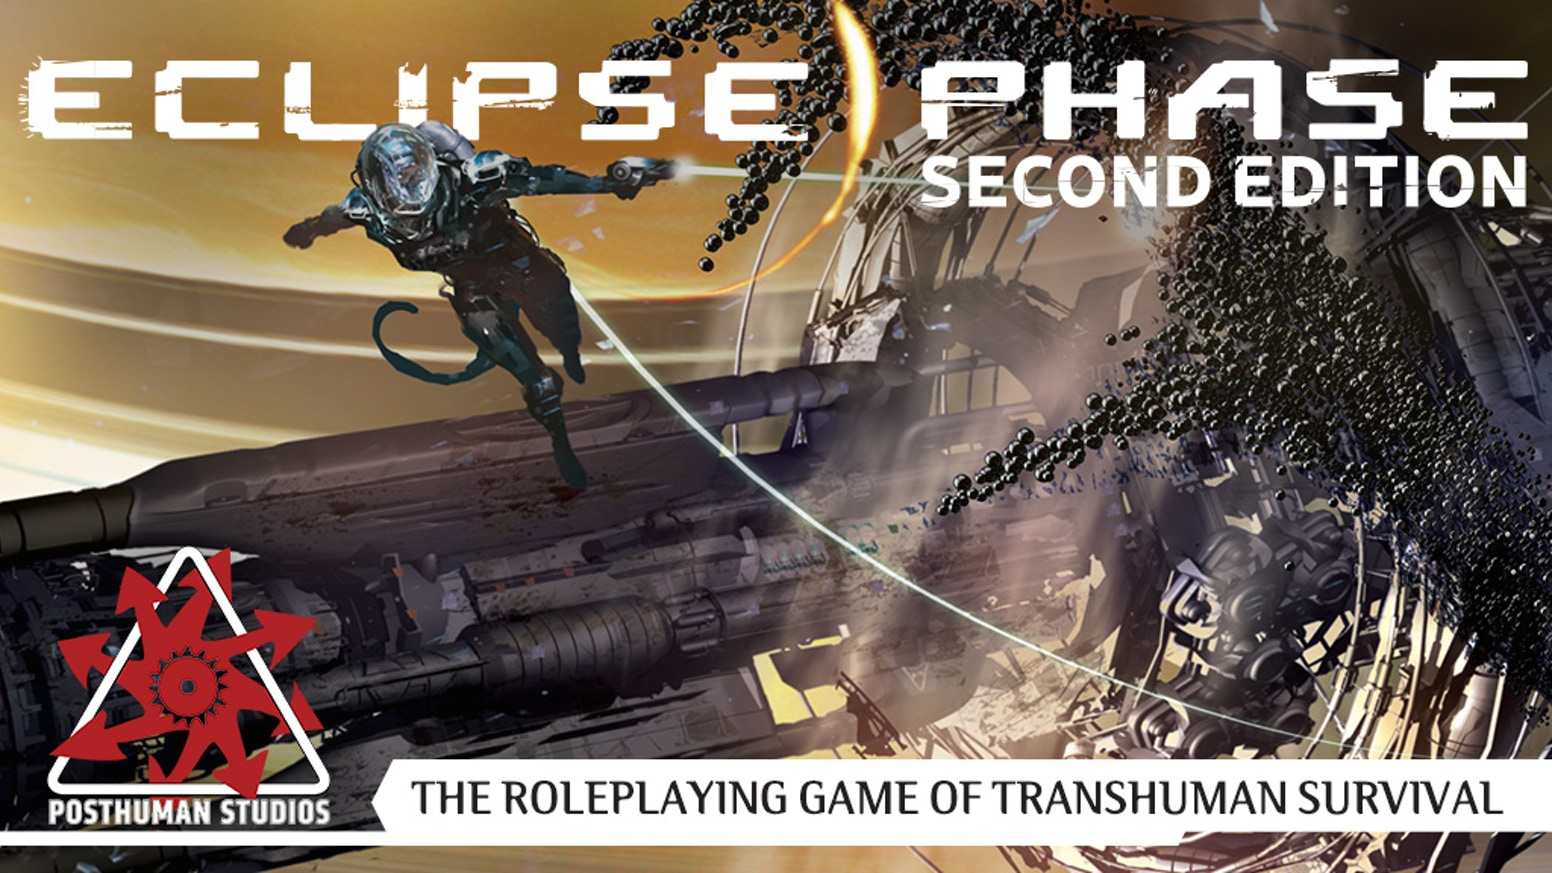 The Roleplaying Game of Transhuman Survival: a streamlined Second Edition!